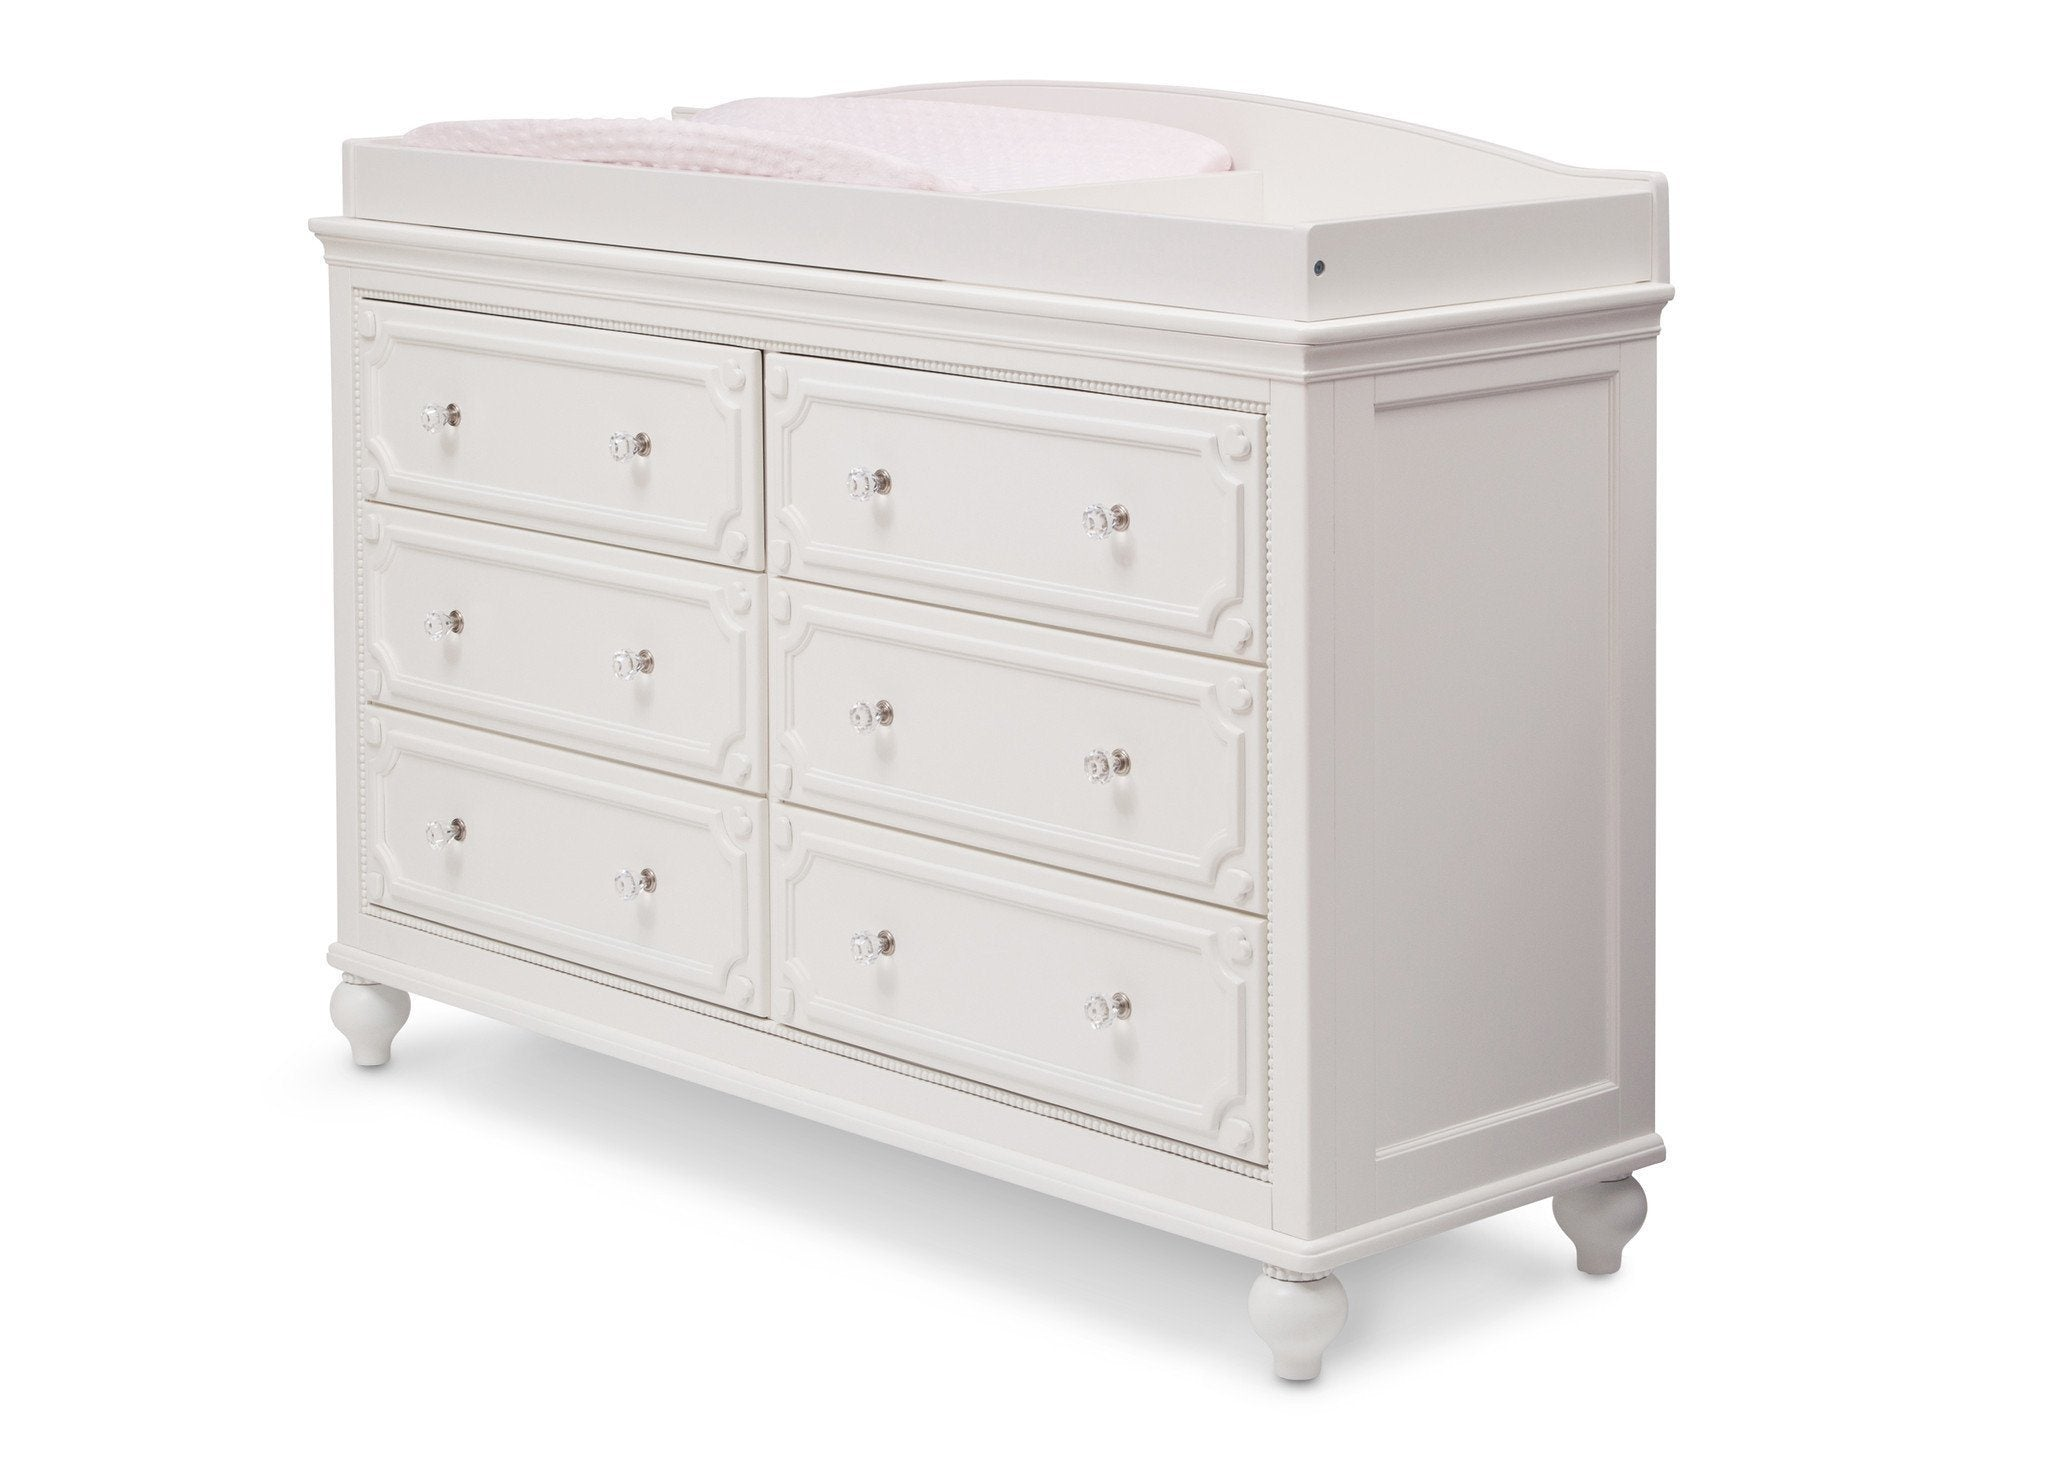 Delta Children White Ambiance (108) Princess Changing Top Side View a3a